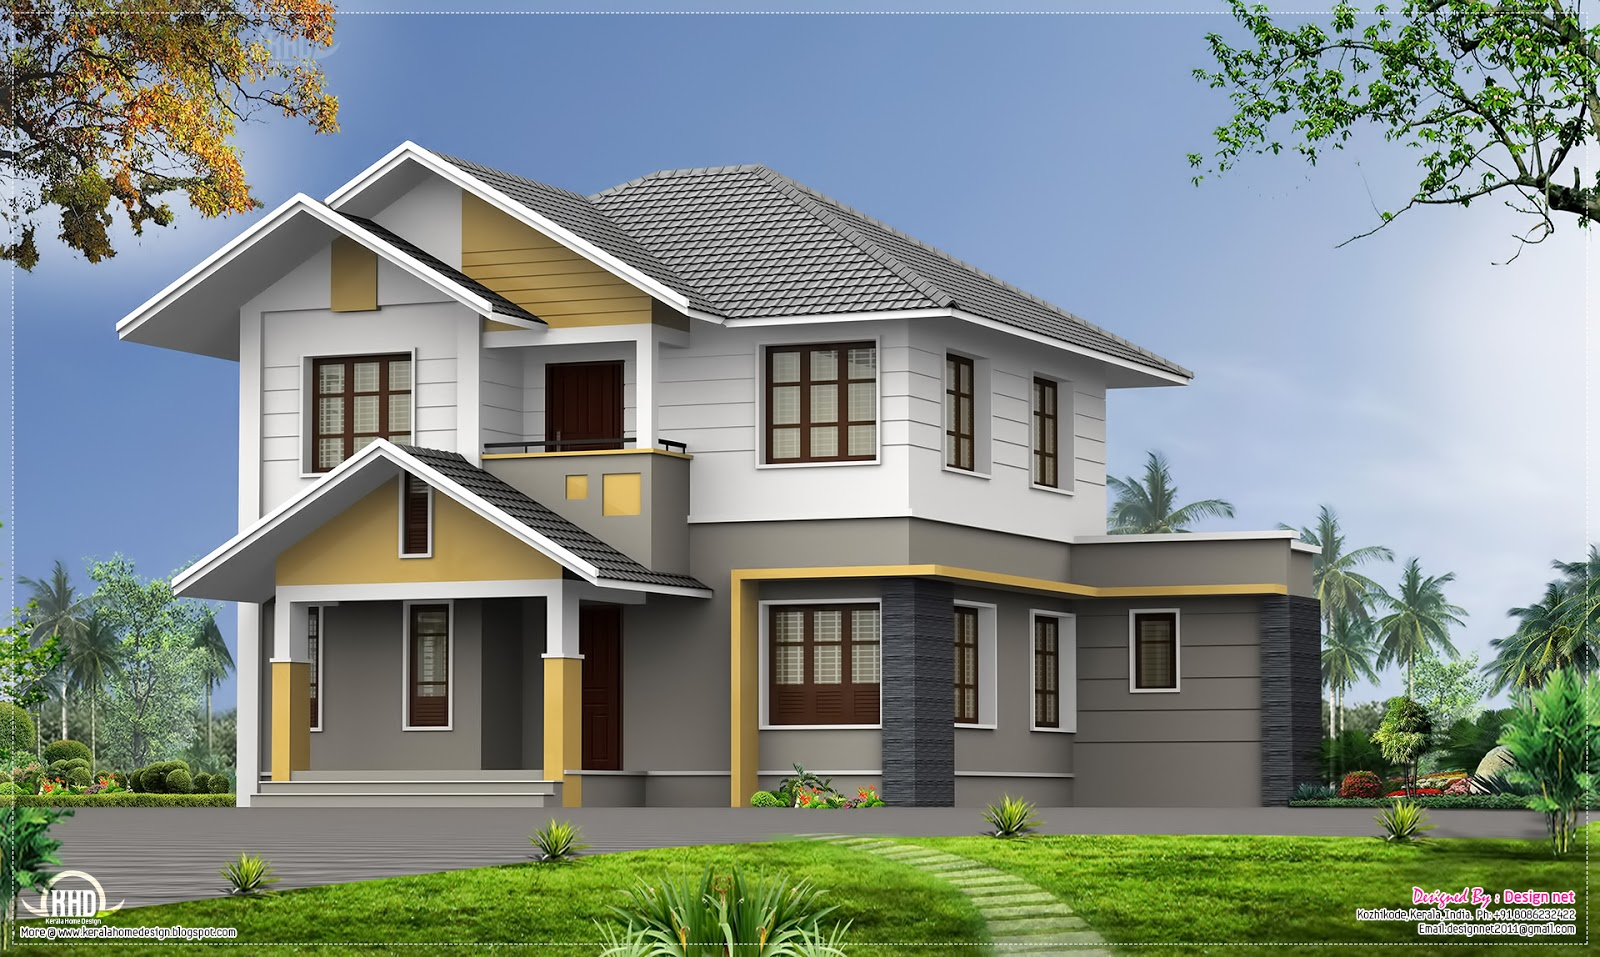 Home plans 2000 sq feet joy studio design gallery best for House plan 2000 sq ft india